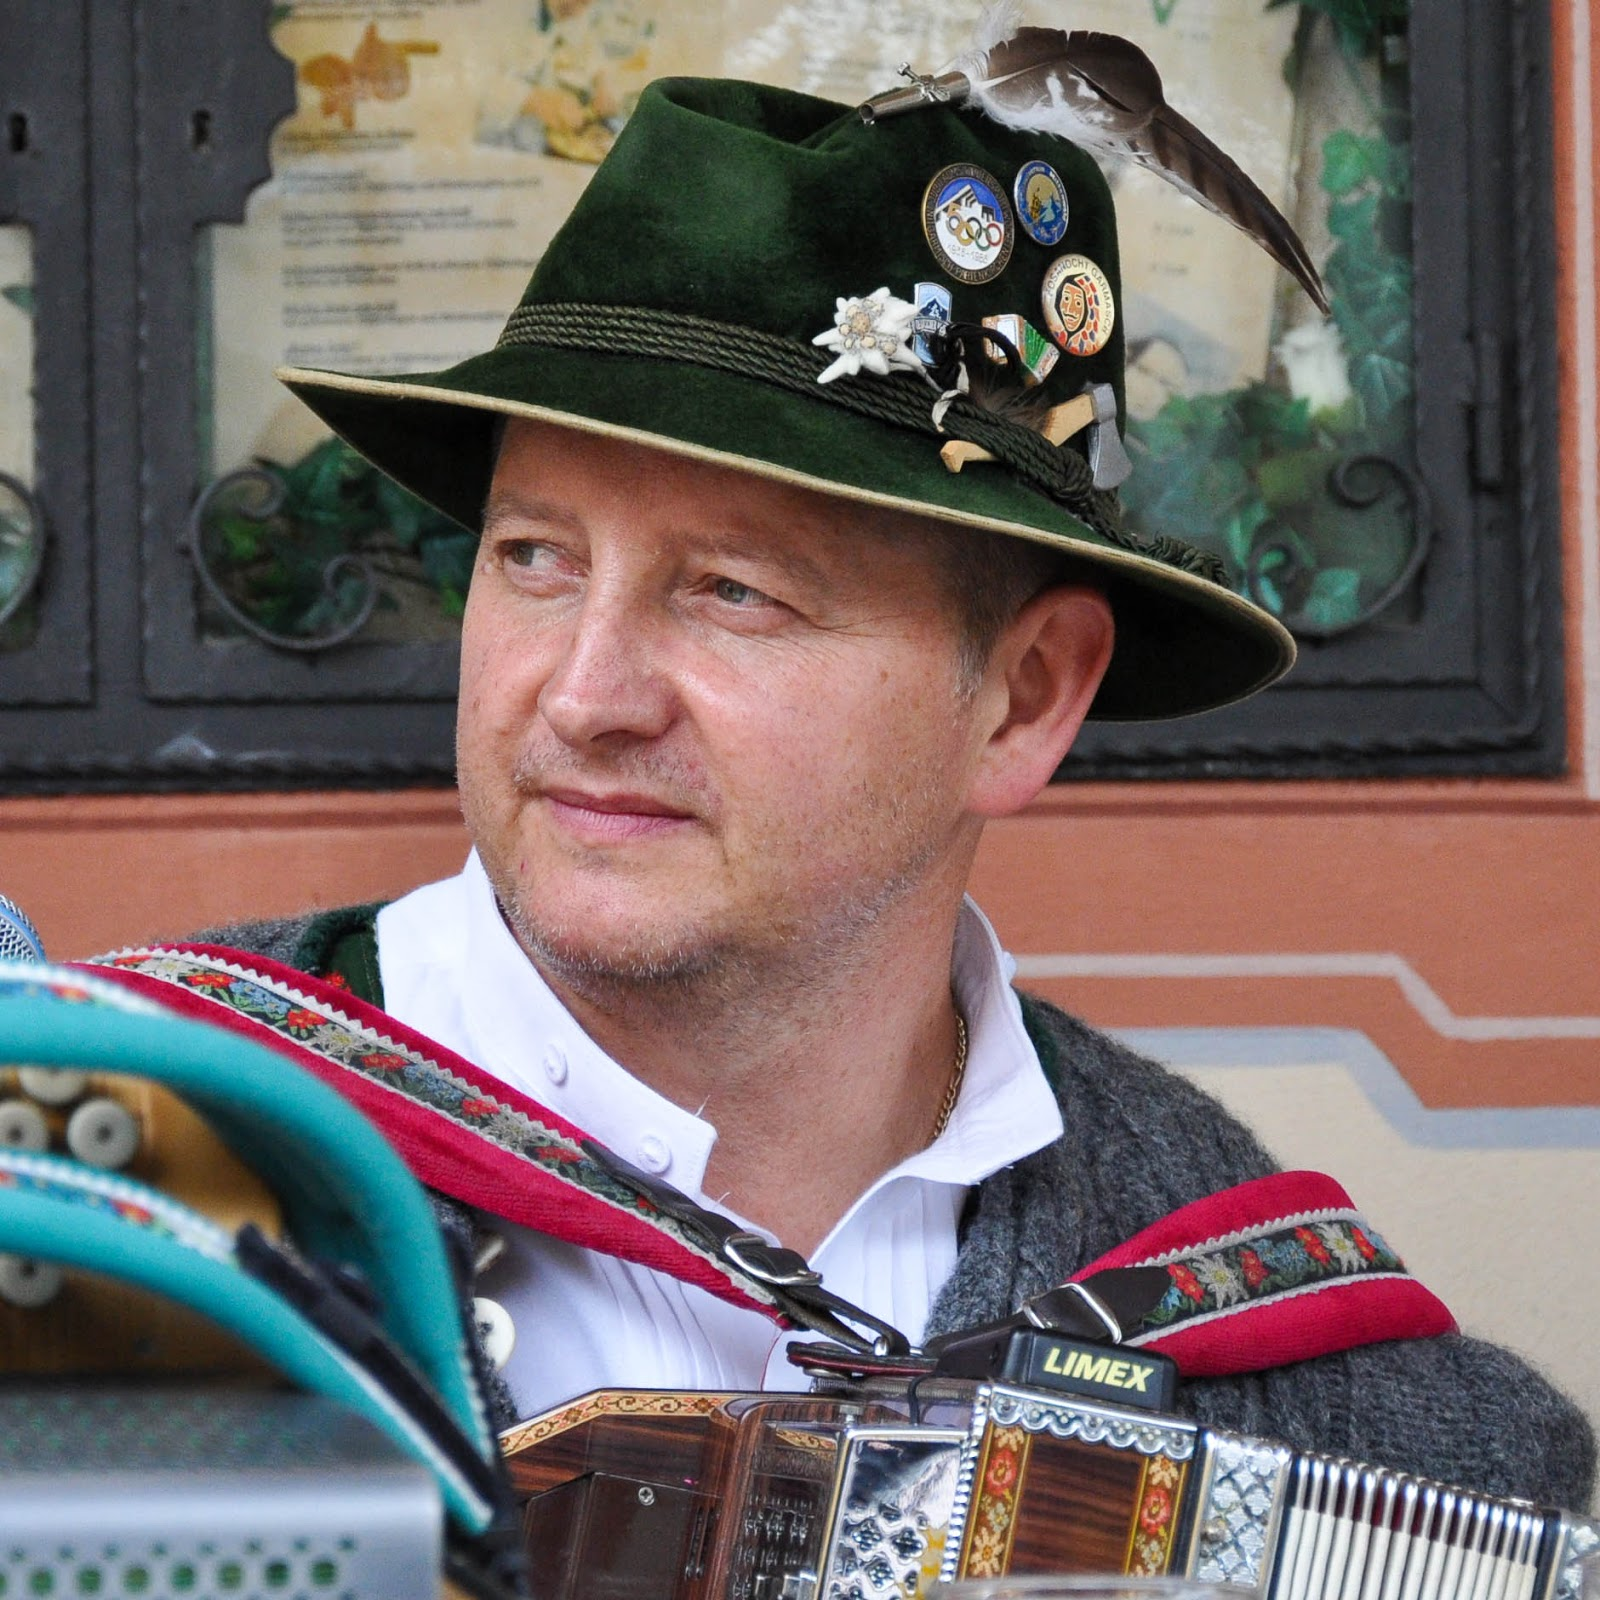 Bavarian folk-singer, Garmisch-Parternkirchen, Bavaria, Germany